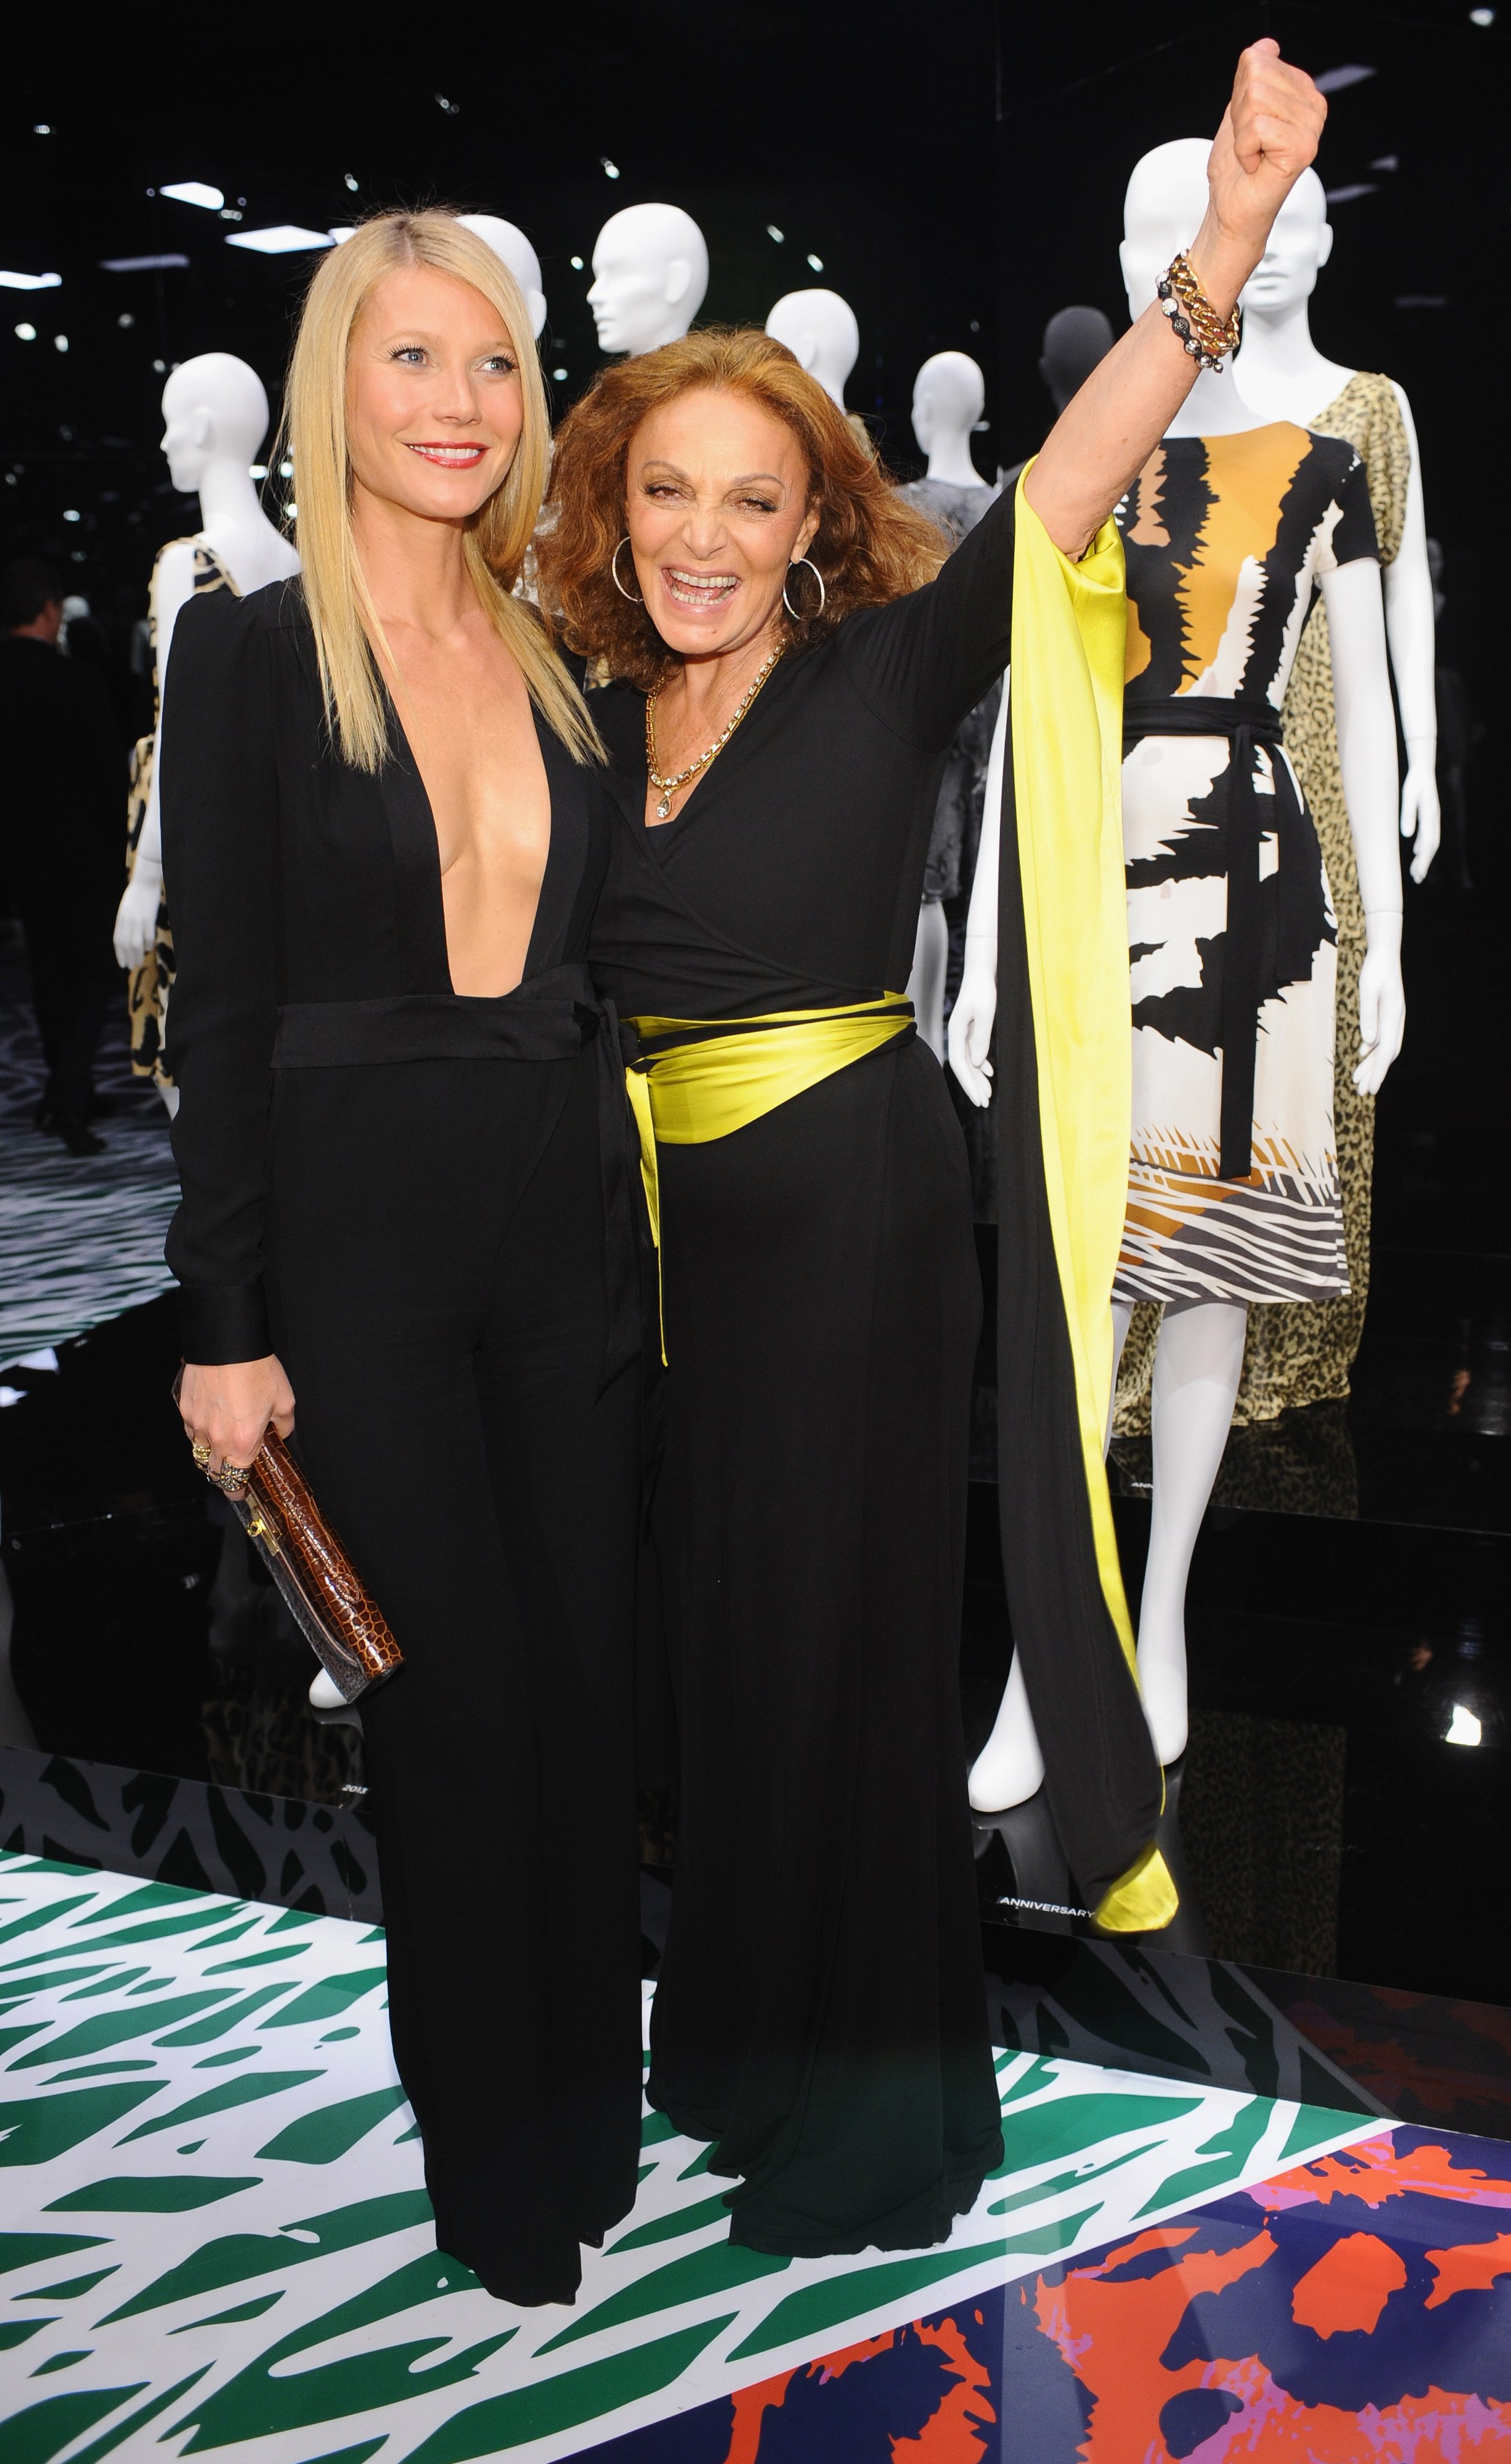 Actress Gwyneth Paltrow and Diane Von Furstenberg attend Diane Von Furstenberg's Journey of A Dress Exhibition Opening Celebration at May Company Building at LACMA West in Los Angeles, California   Photo: Stefanie Keenan/Getty Images for Diane Von Furstenberg